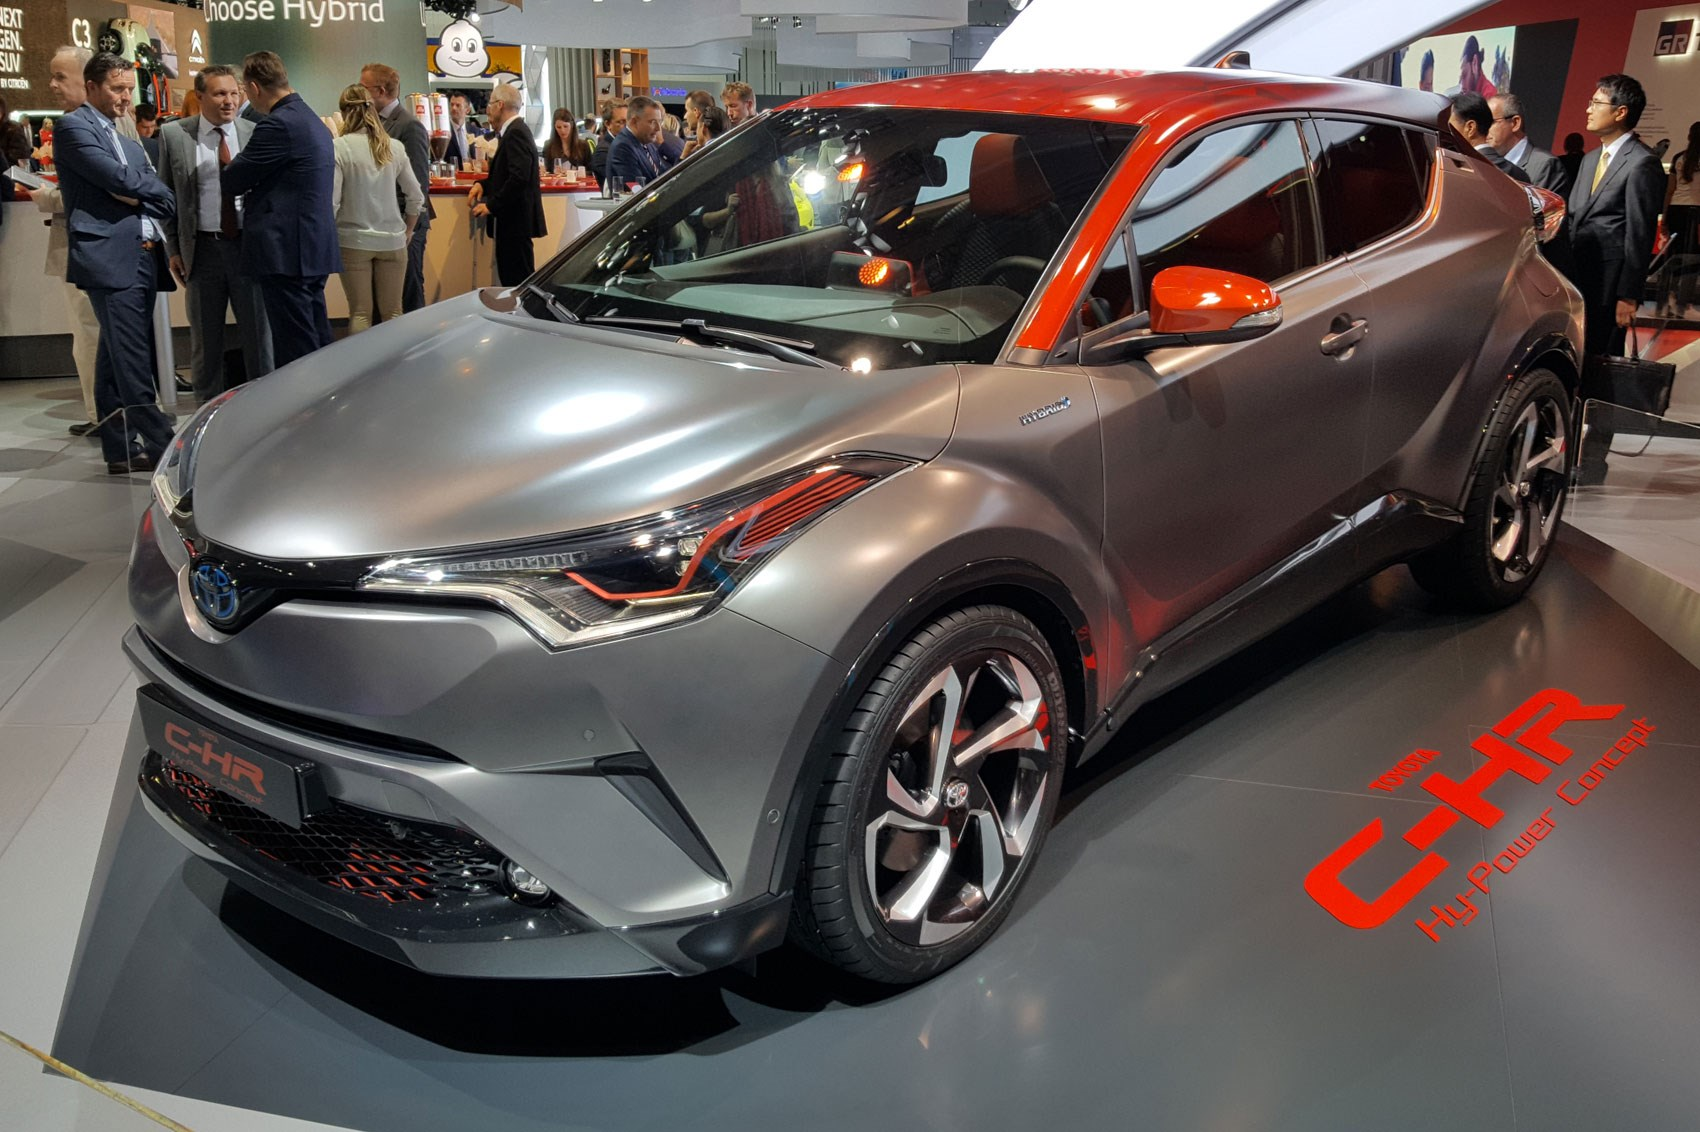 Crossover Gets Cross CHR Hypower Concept Shows Whats Up Toyotas - Merit chevrolet car show